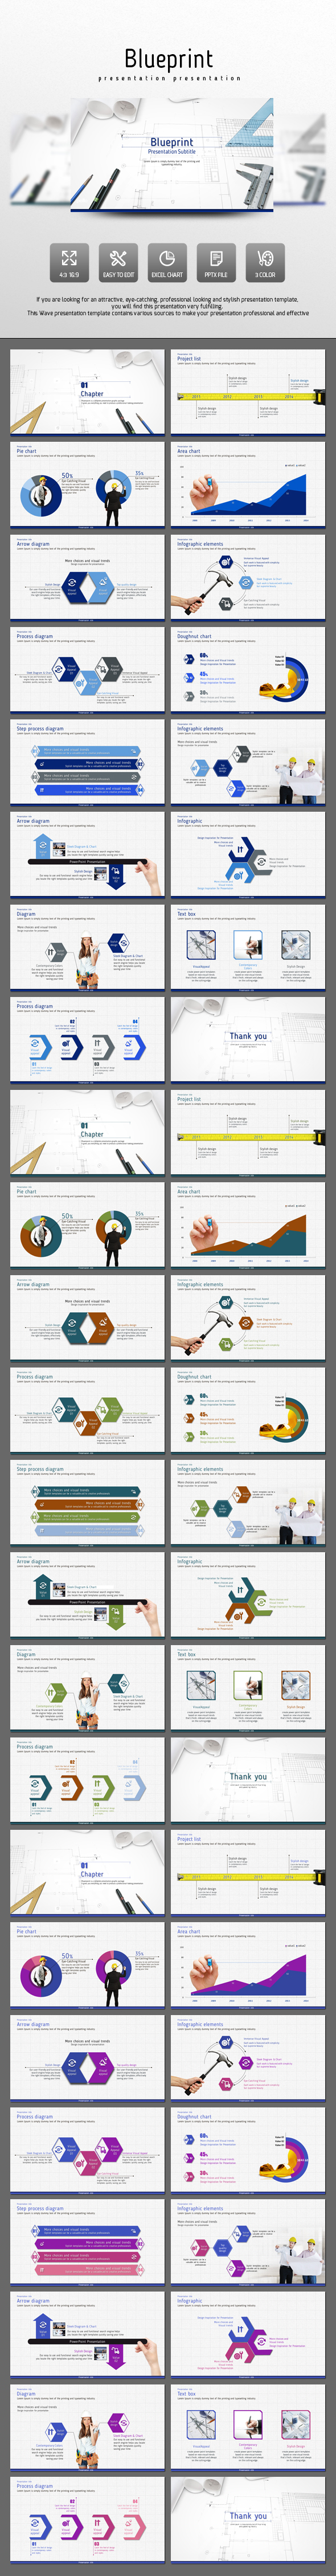 Blueprint presentation templates graphics and presentation design blueprint presentation template contains imagesphotos that people in the architectural or architecture related busi toneelgroepblik Images